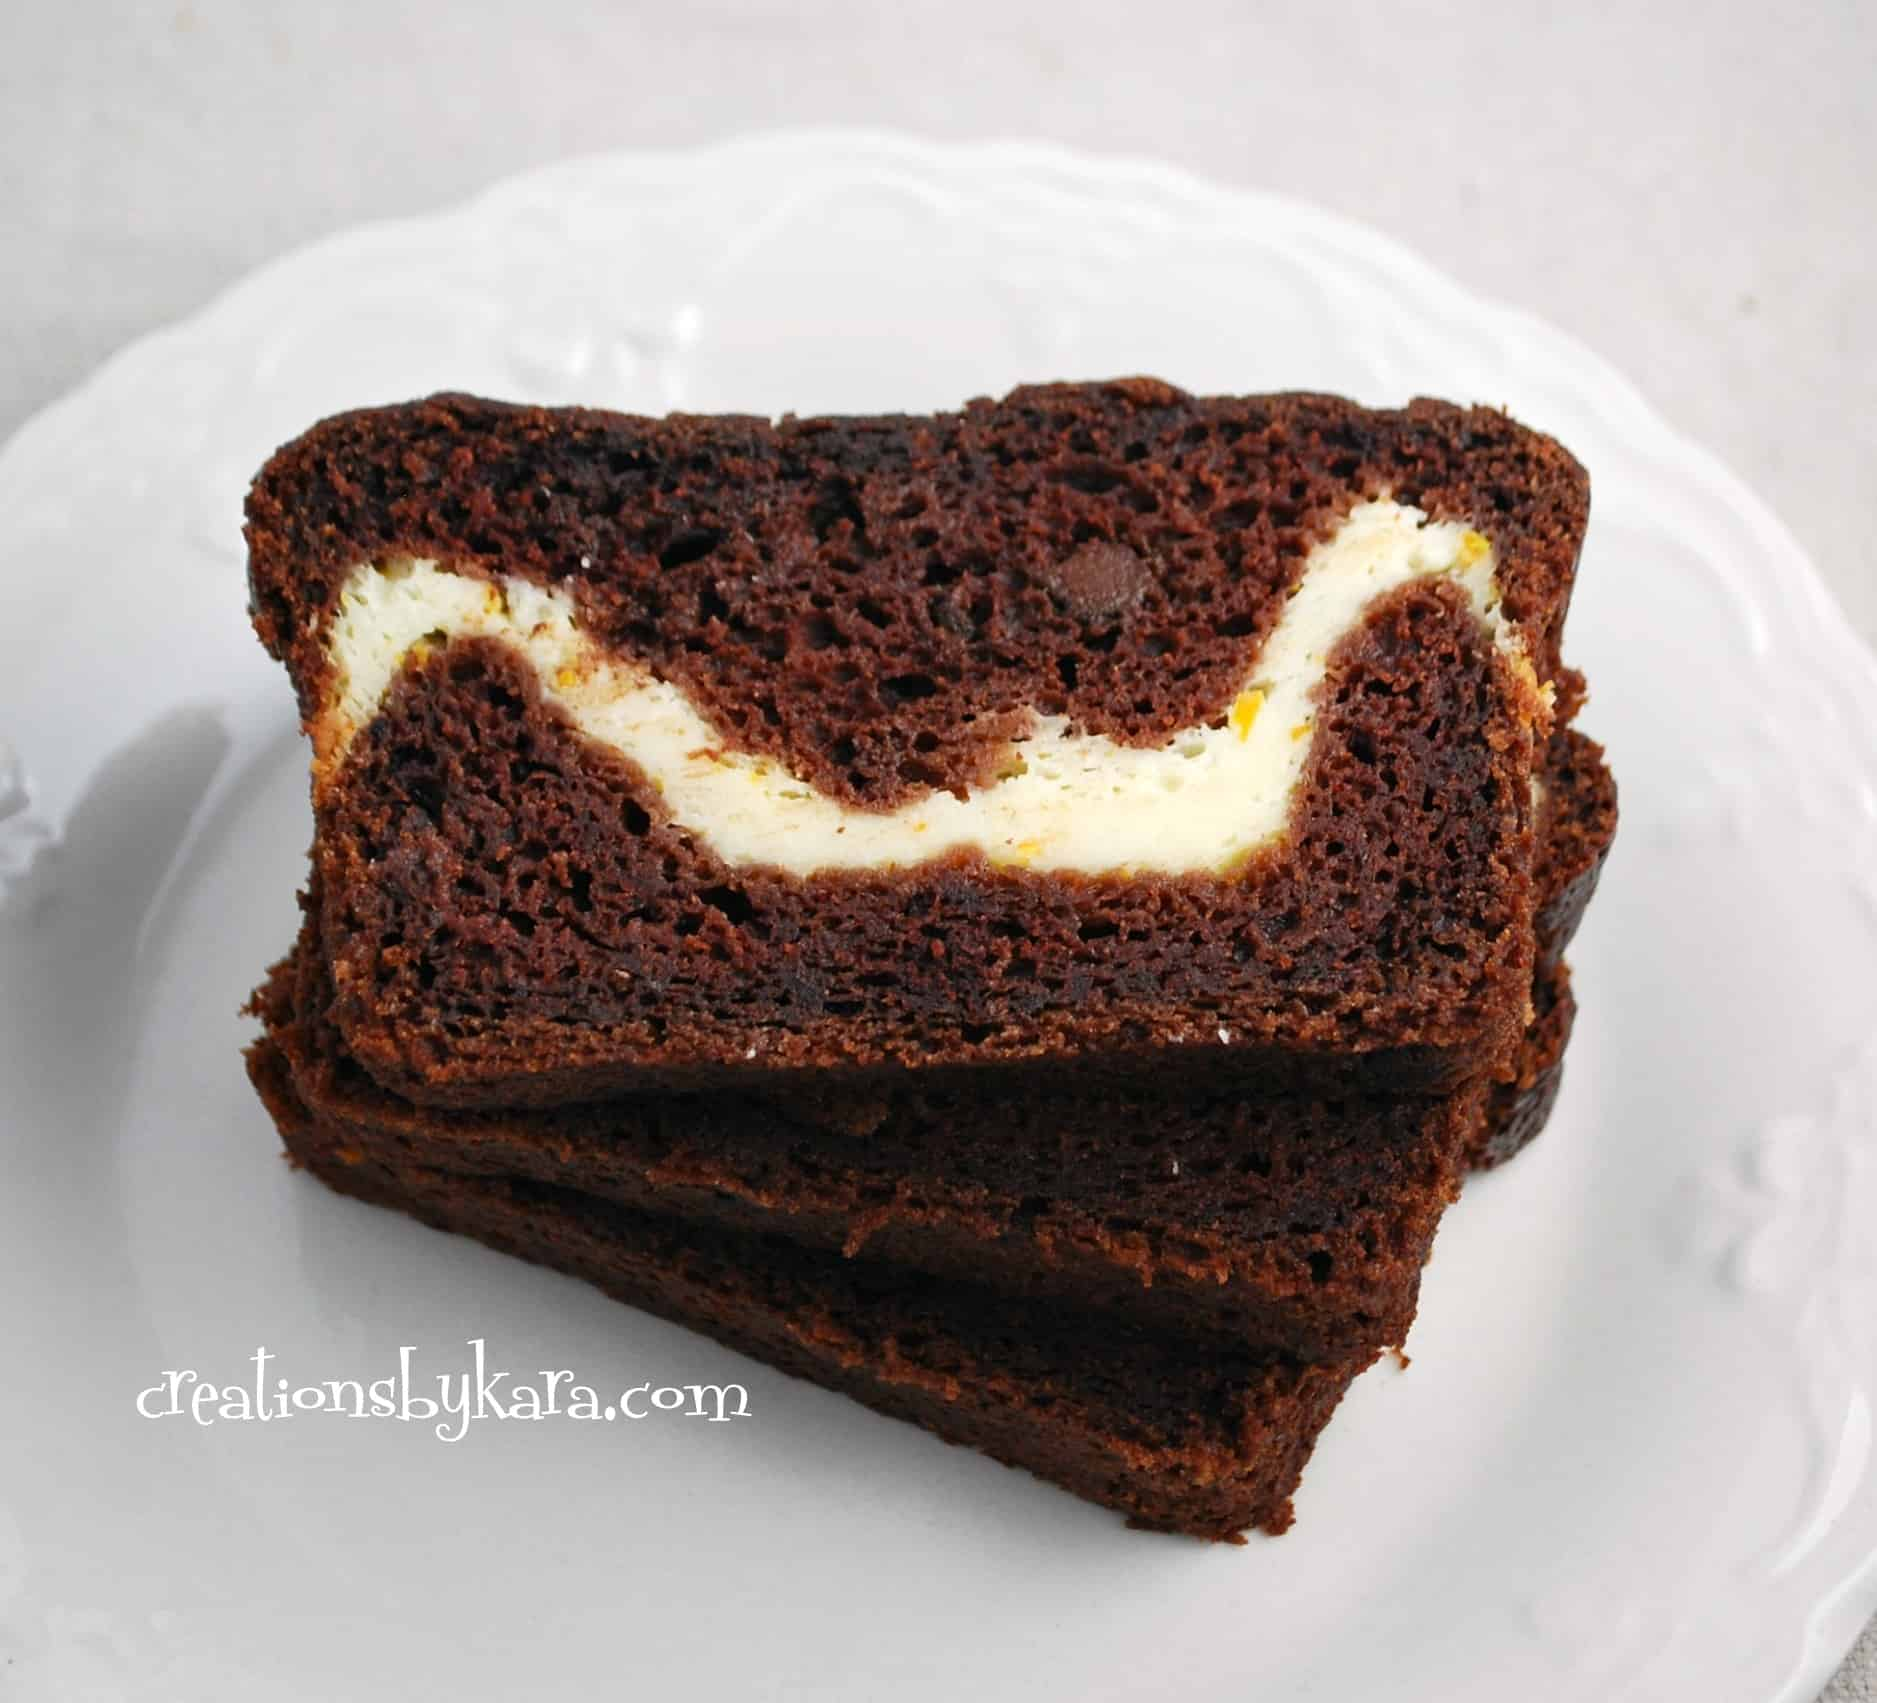 cream cheese chocolate zucchini bread 002 - Creations by Kara